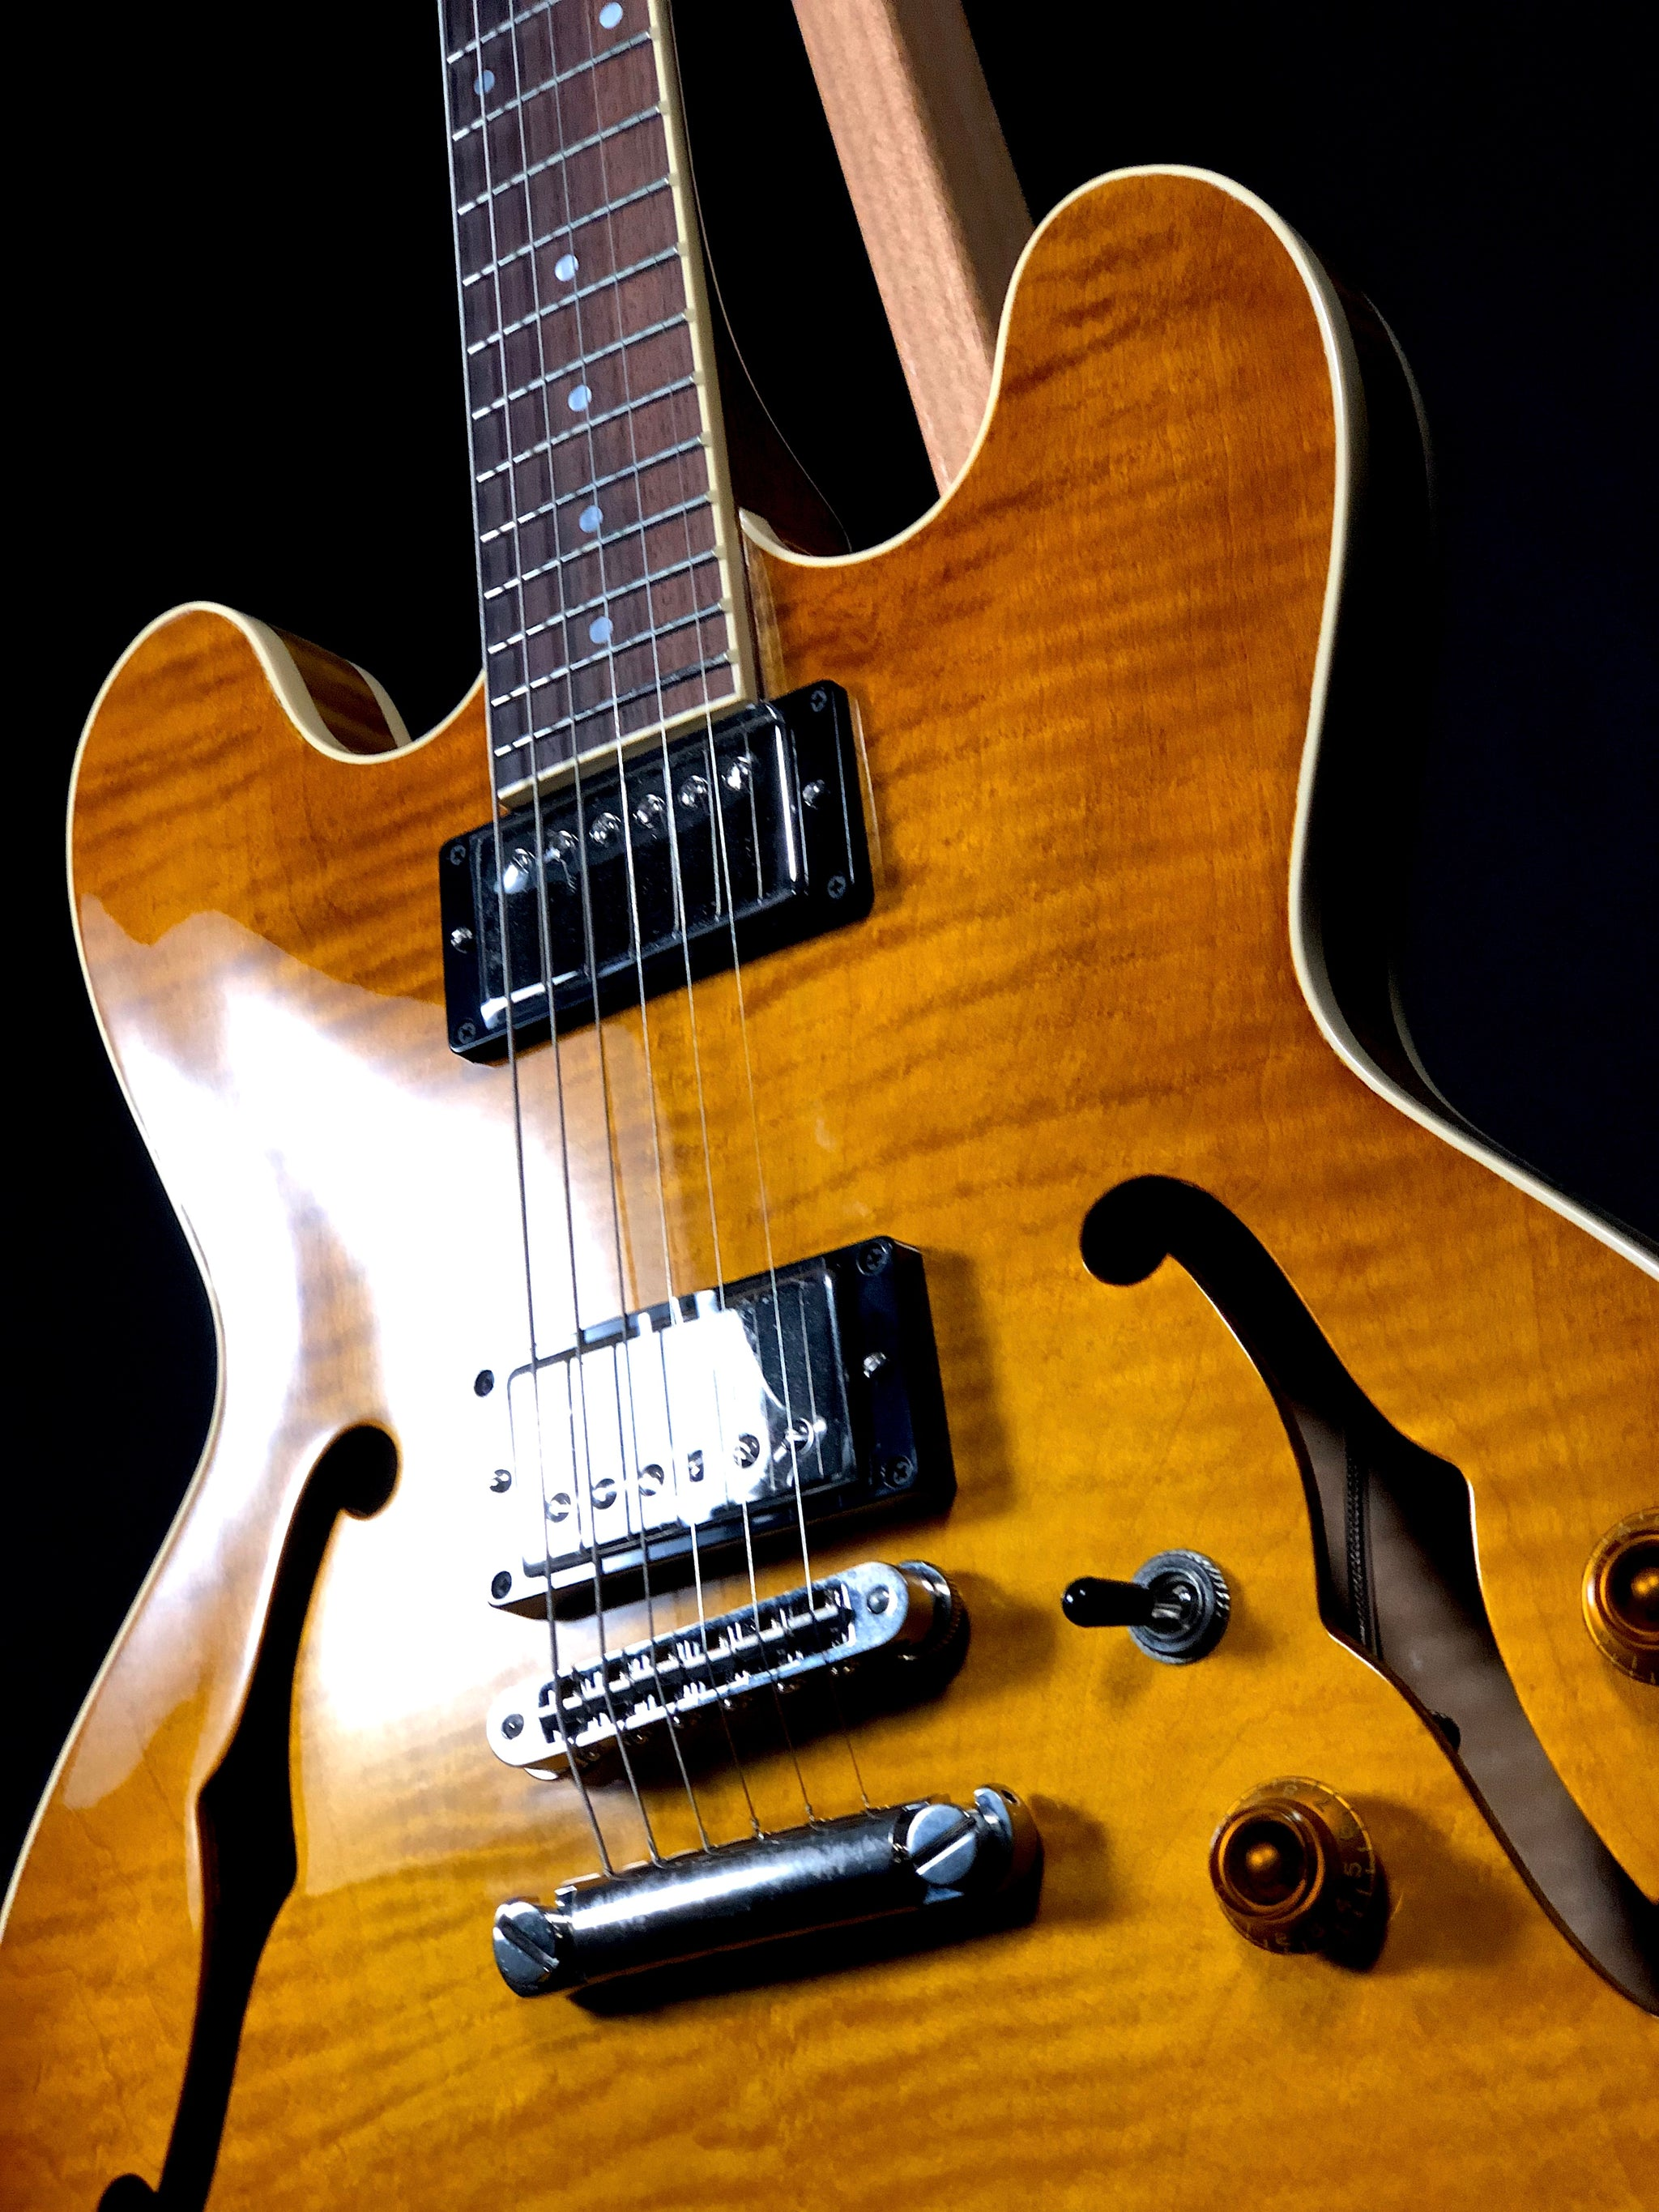 H535 Antique Sunburst